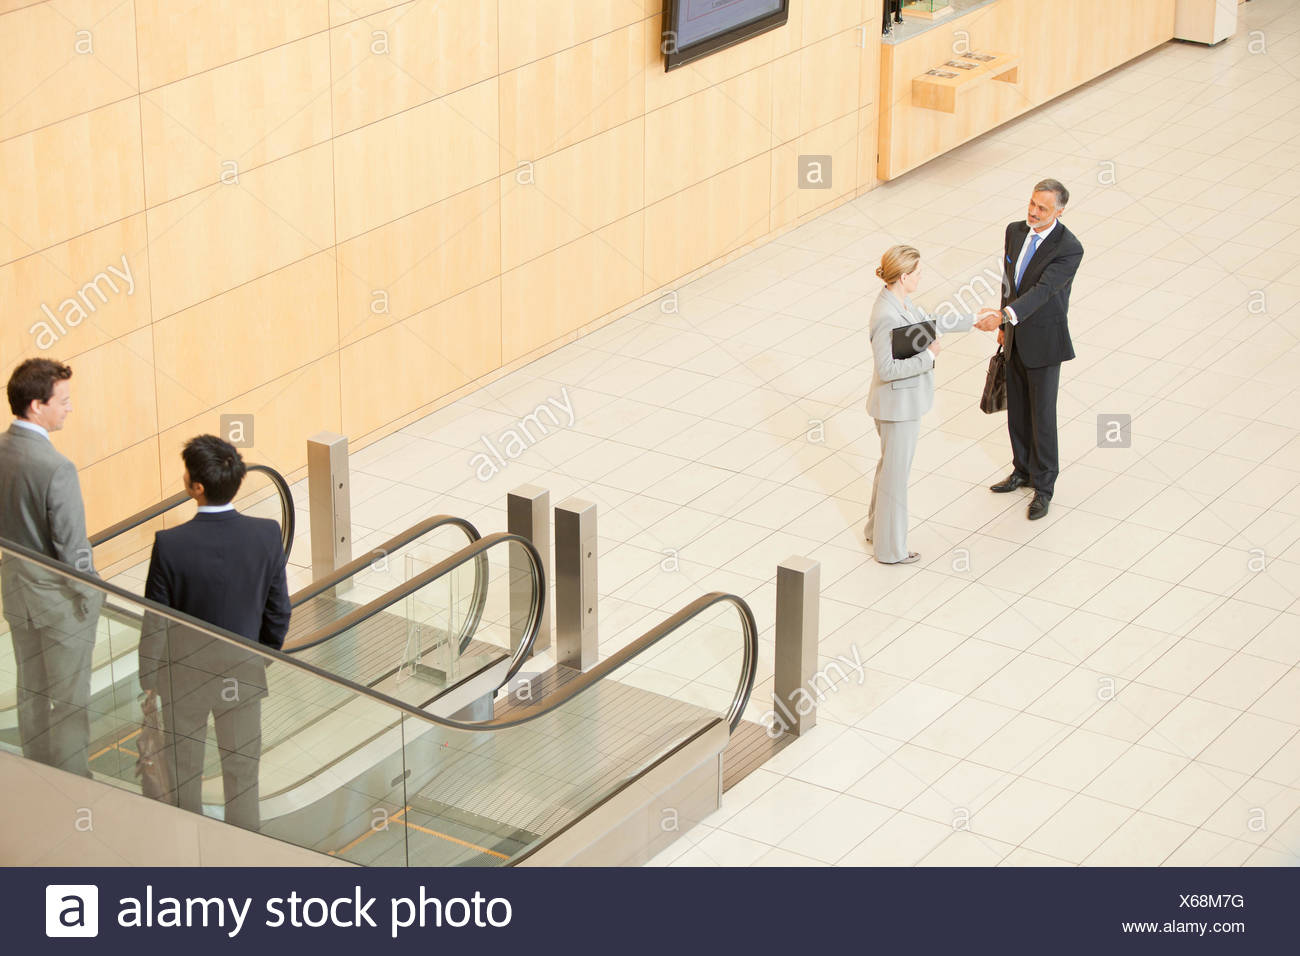 Business people standing at bottom of escalator Stock Photo